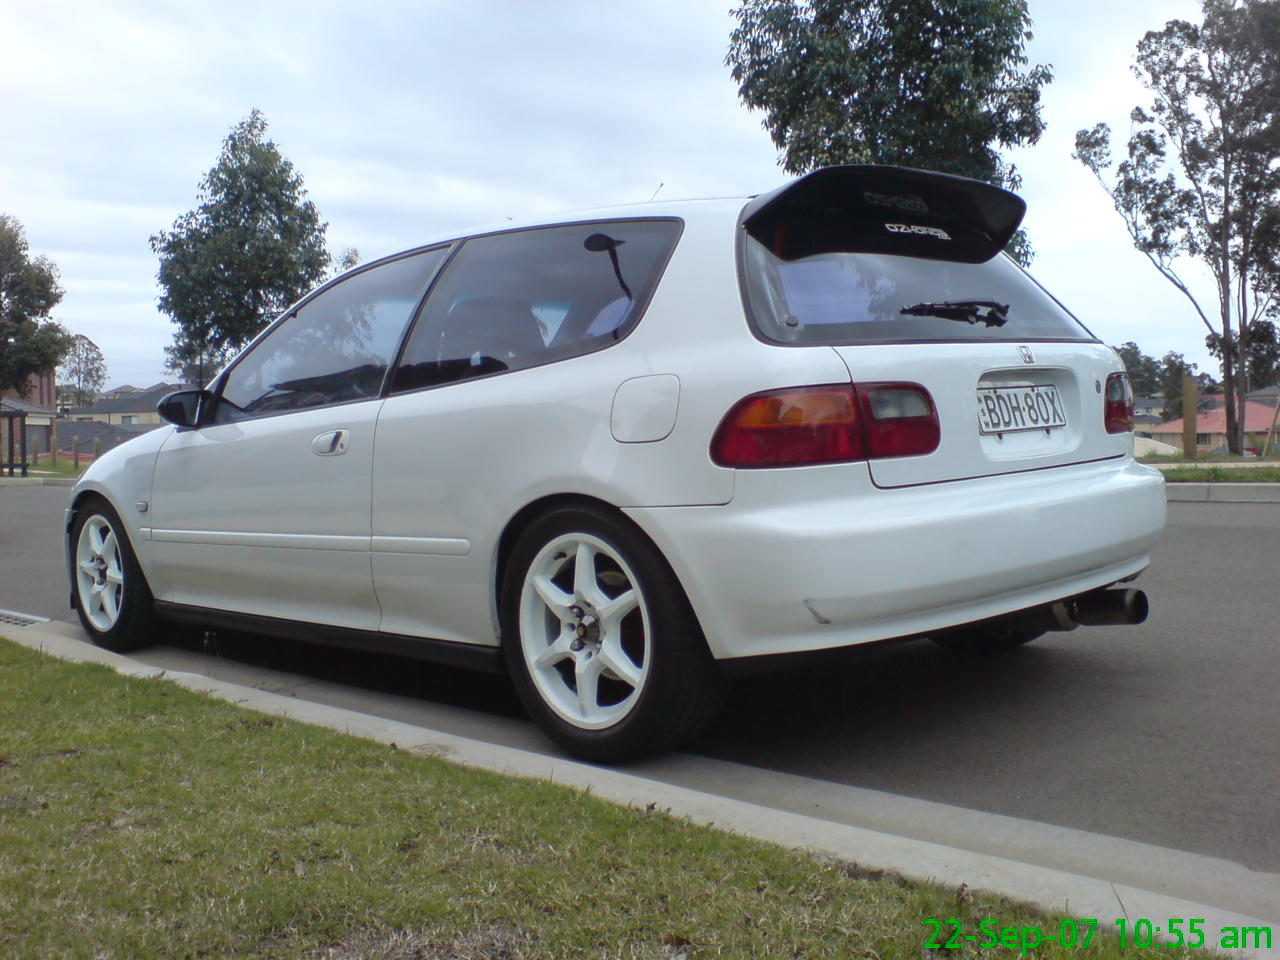 1993 honda civic hatchback - photo #6